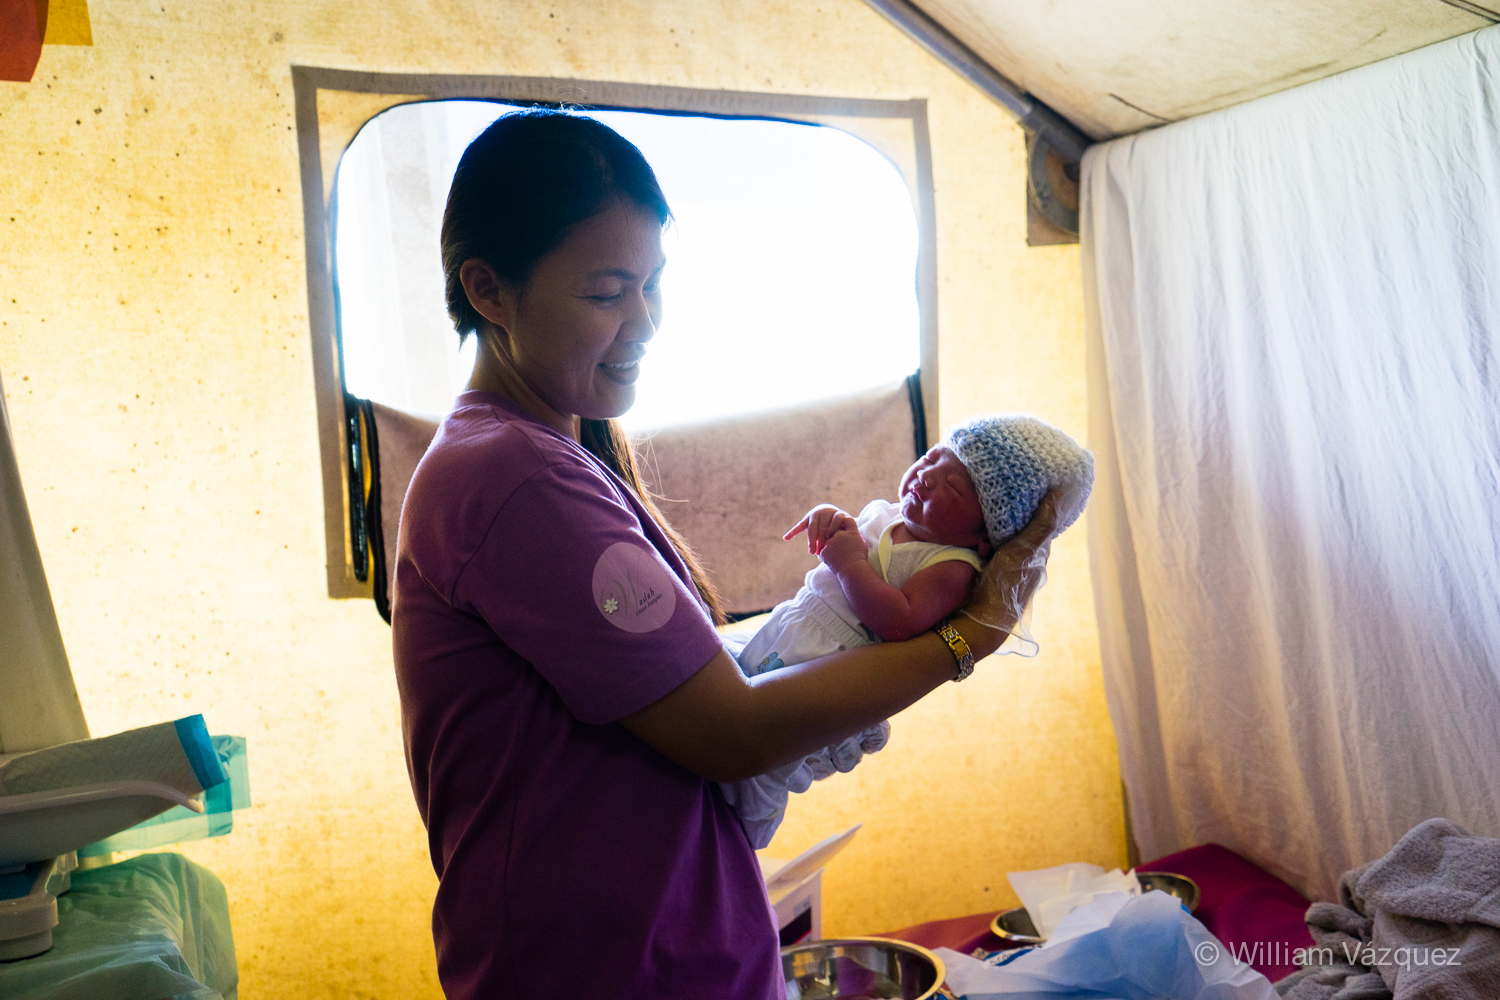 Midwife holding a newborn baby at Bumi Sehat Foundation clinic in Dulag, Philippines